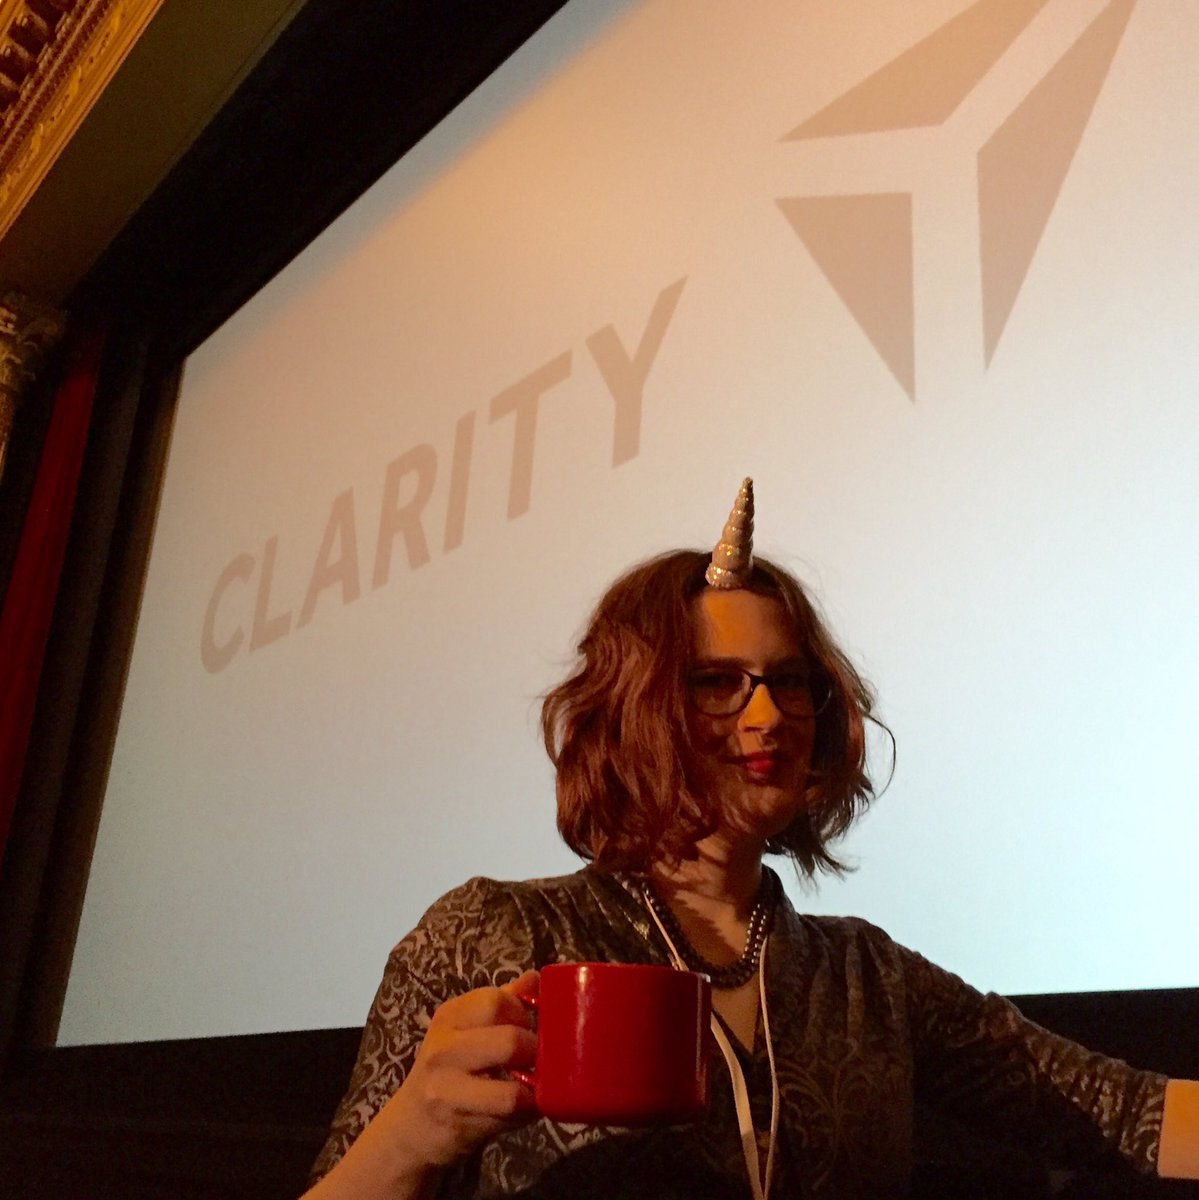 The rare animation unicorn sighting! @rachelnabors @clarity_conf #animateallthethings https://t.co/6DuwAc3TOT